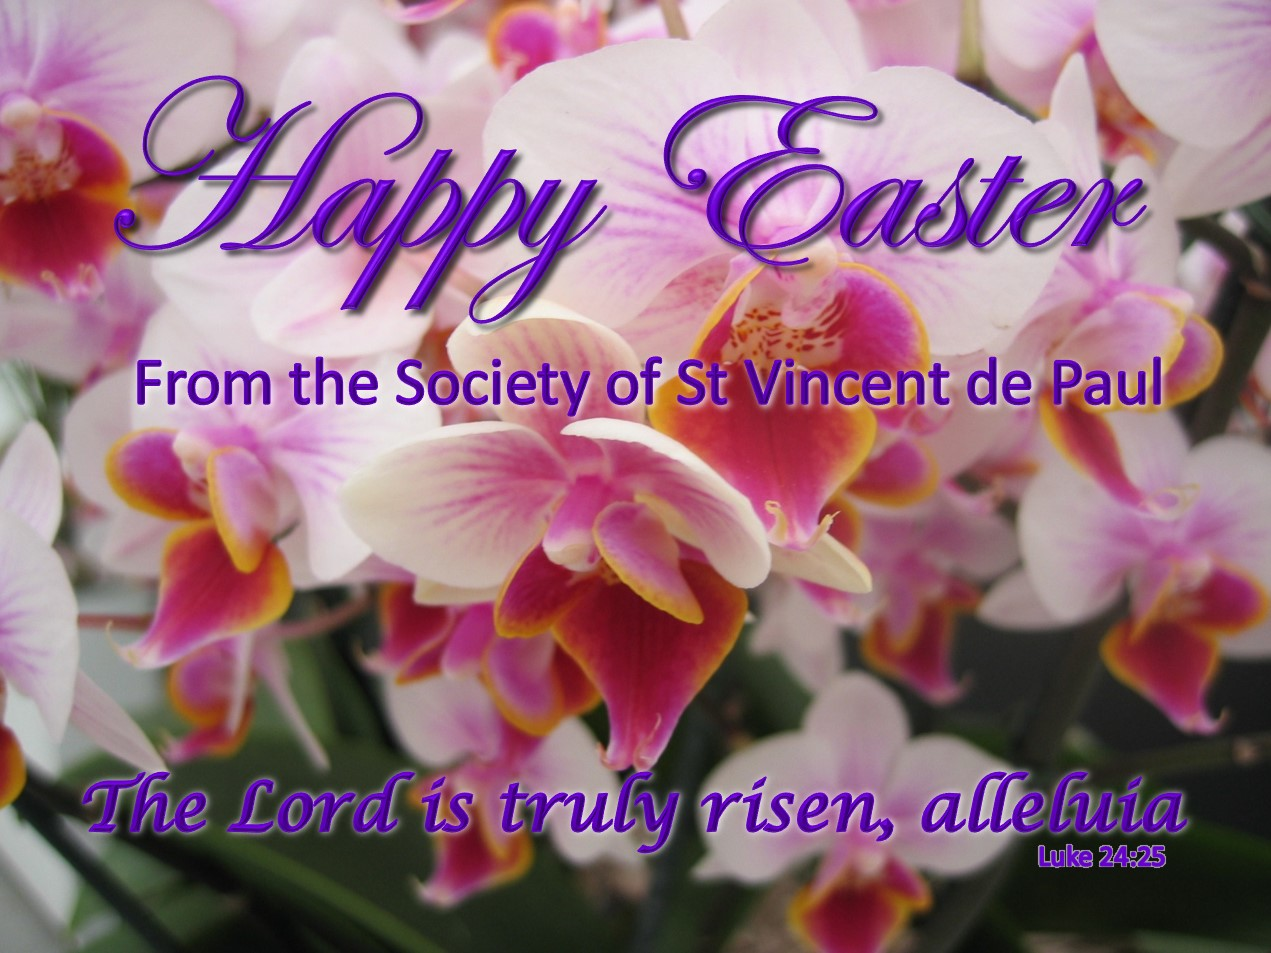 easter-wishes-web.jpg